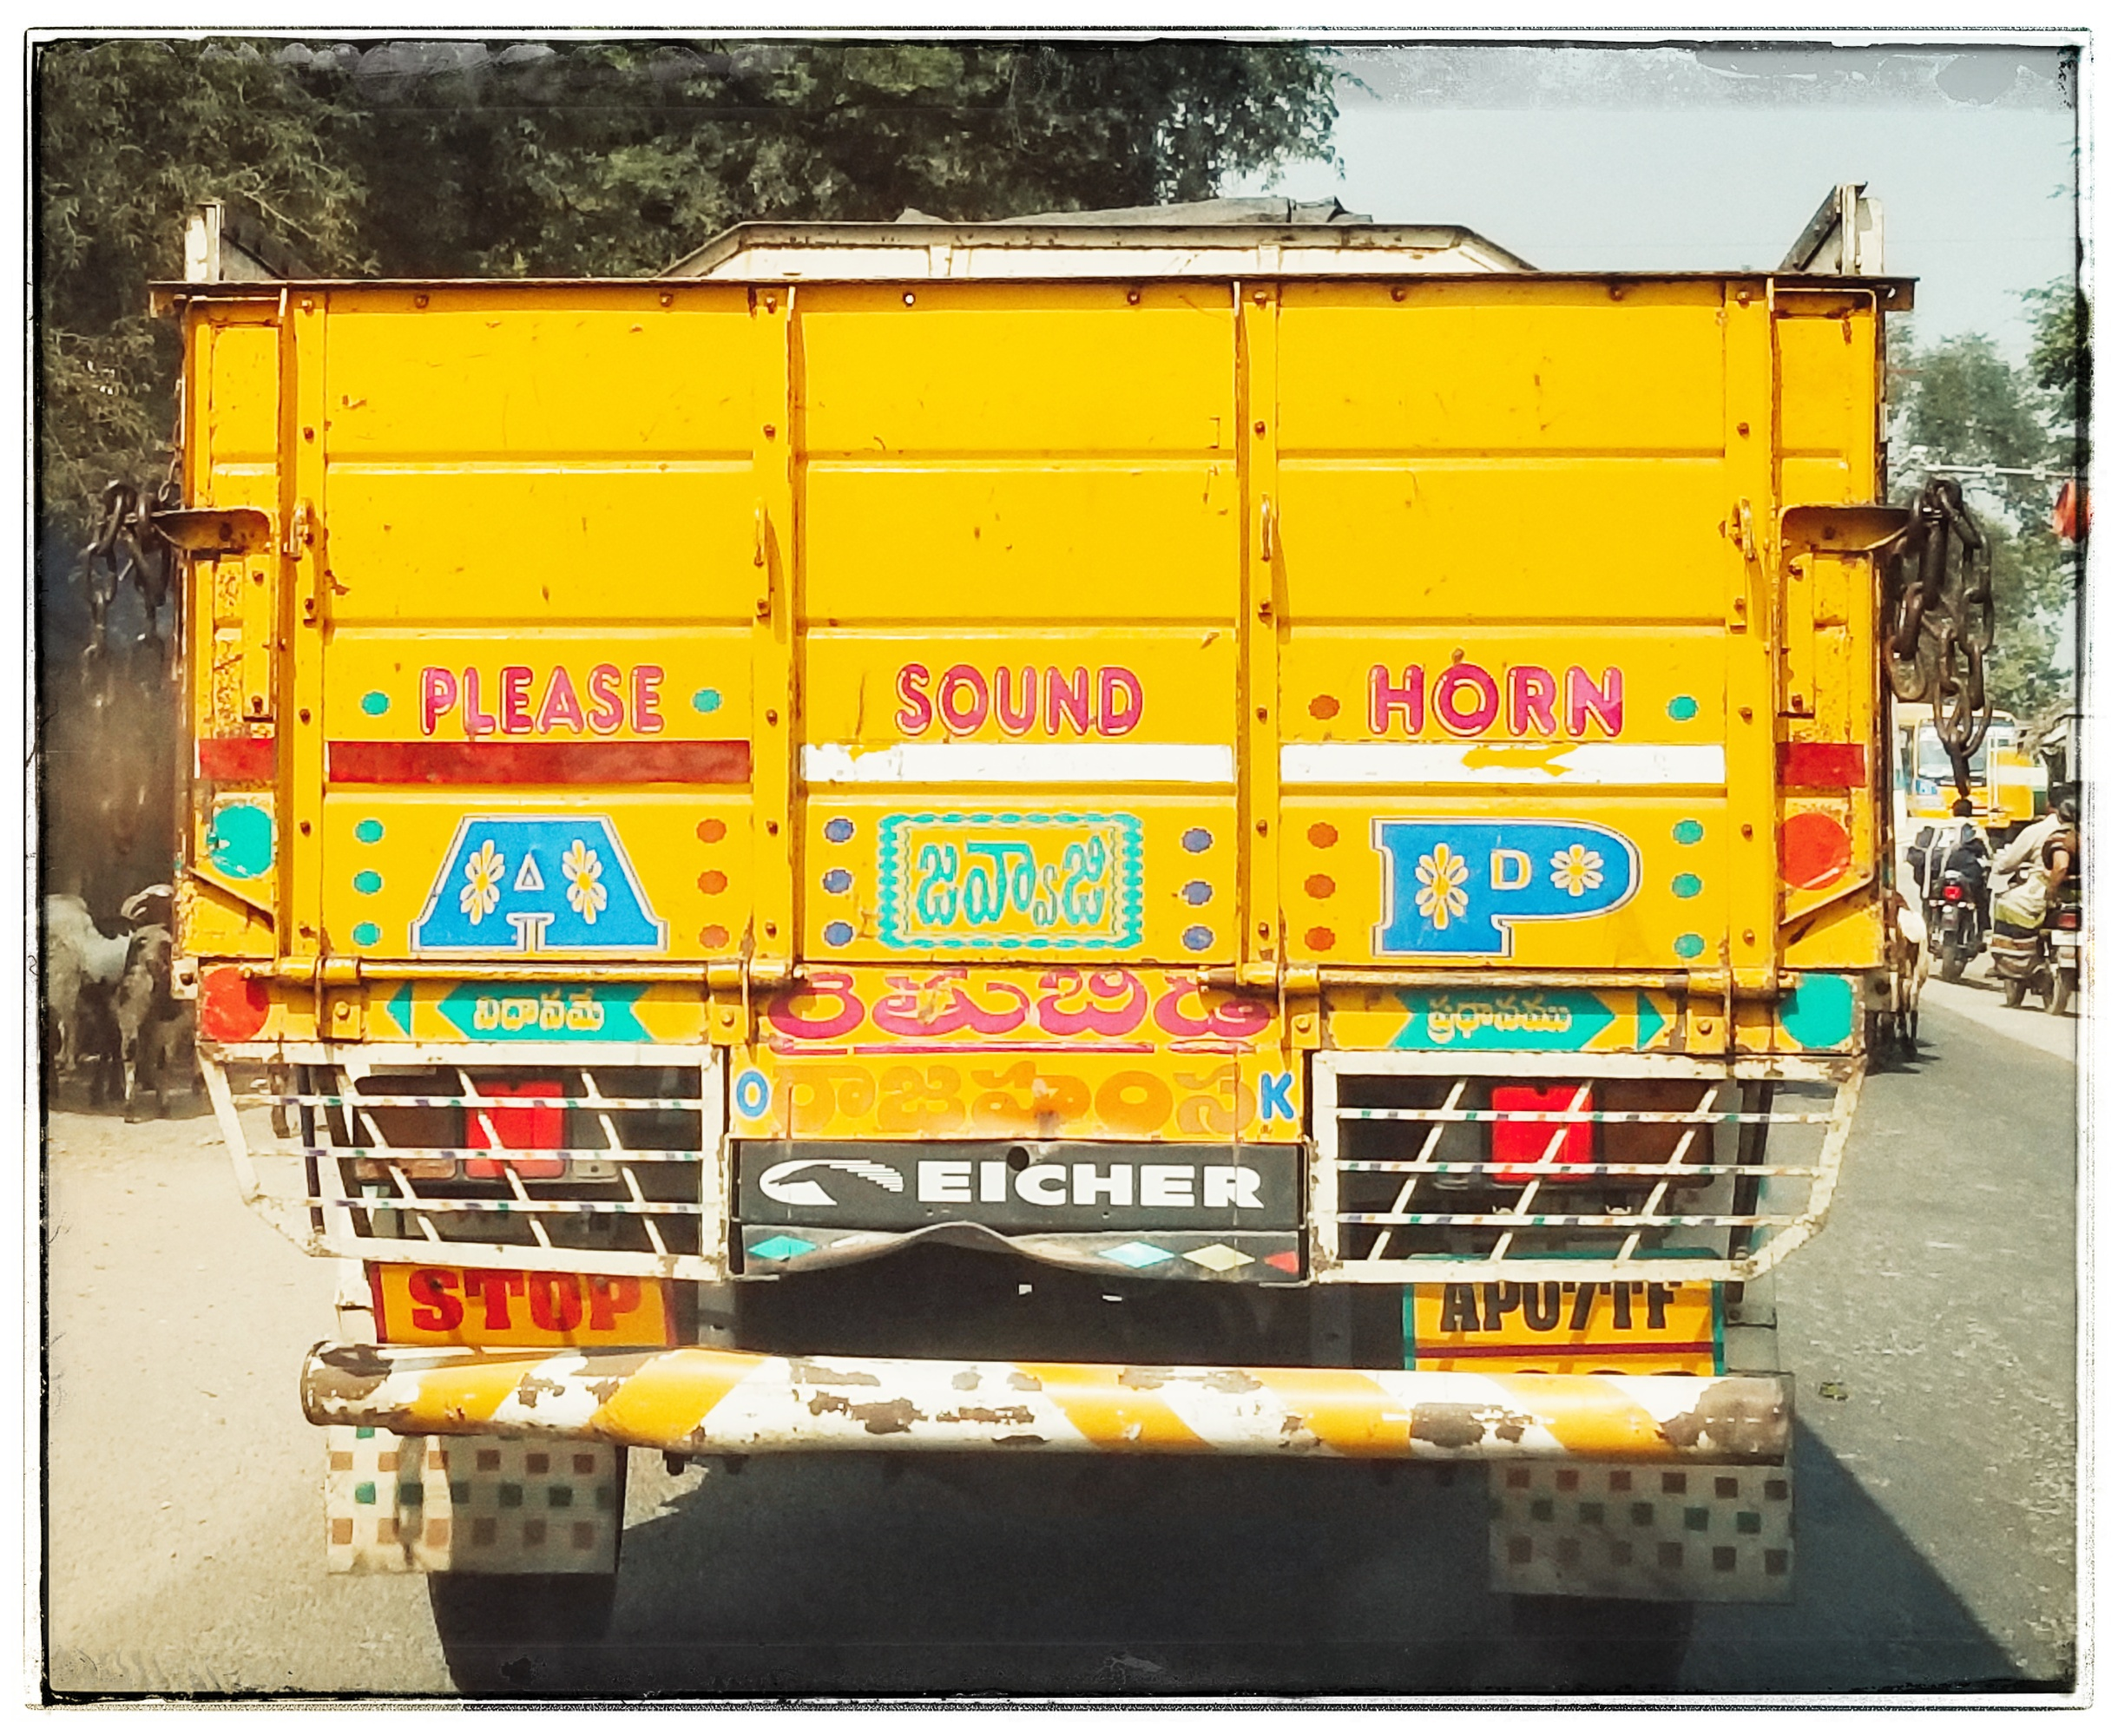 Trucks encourage honking so they know where you are.